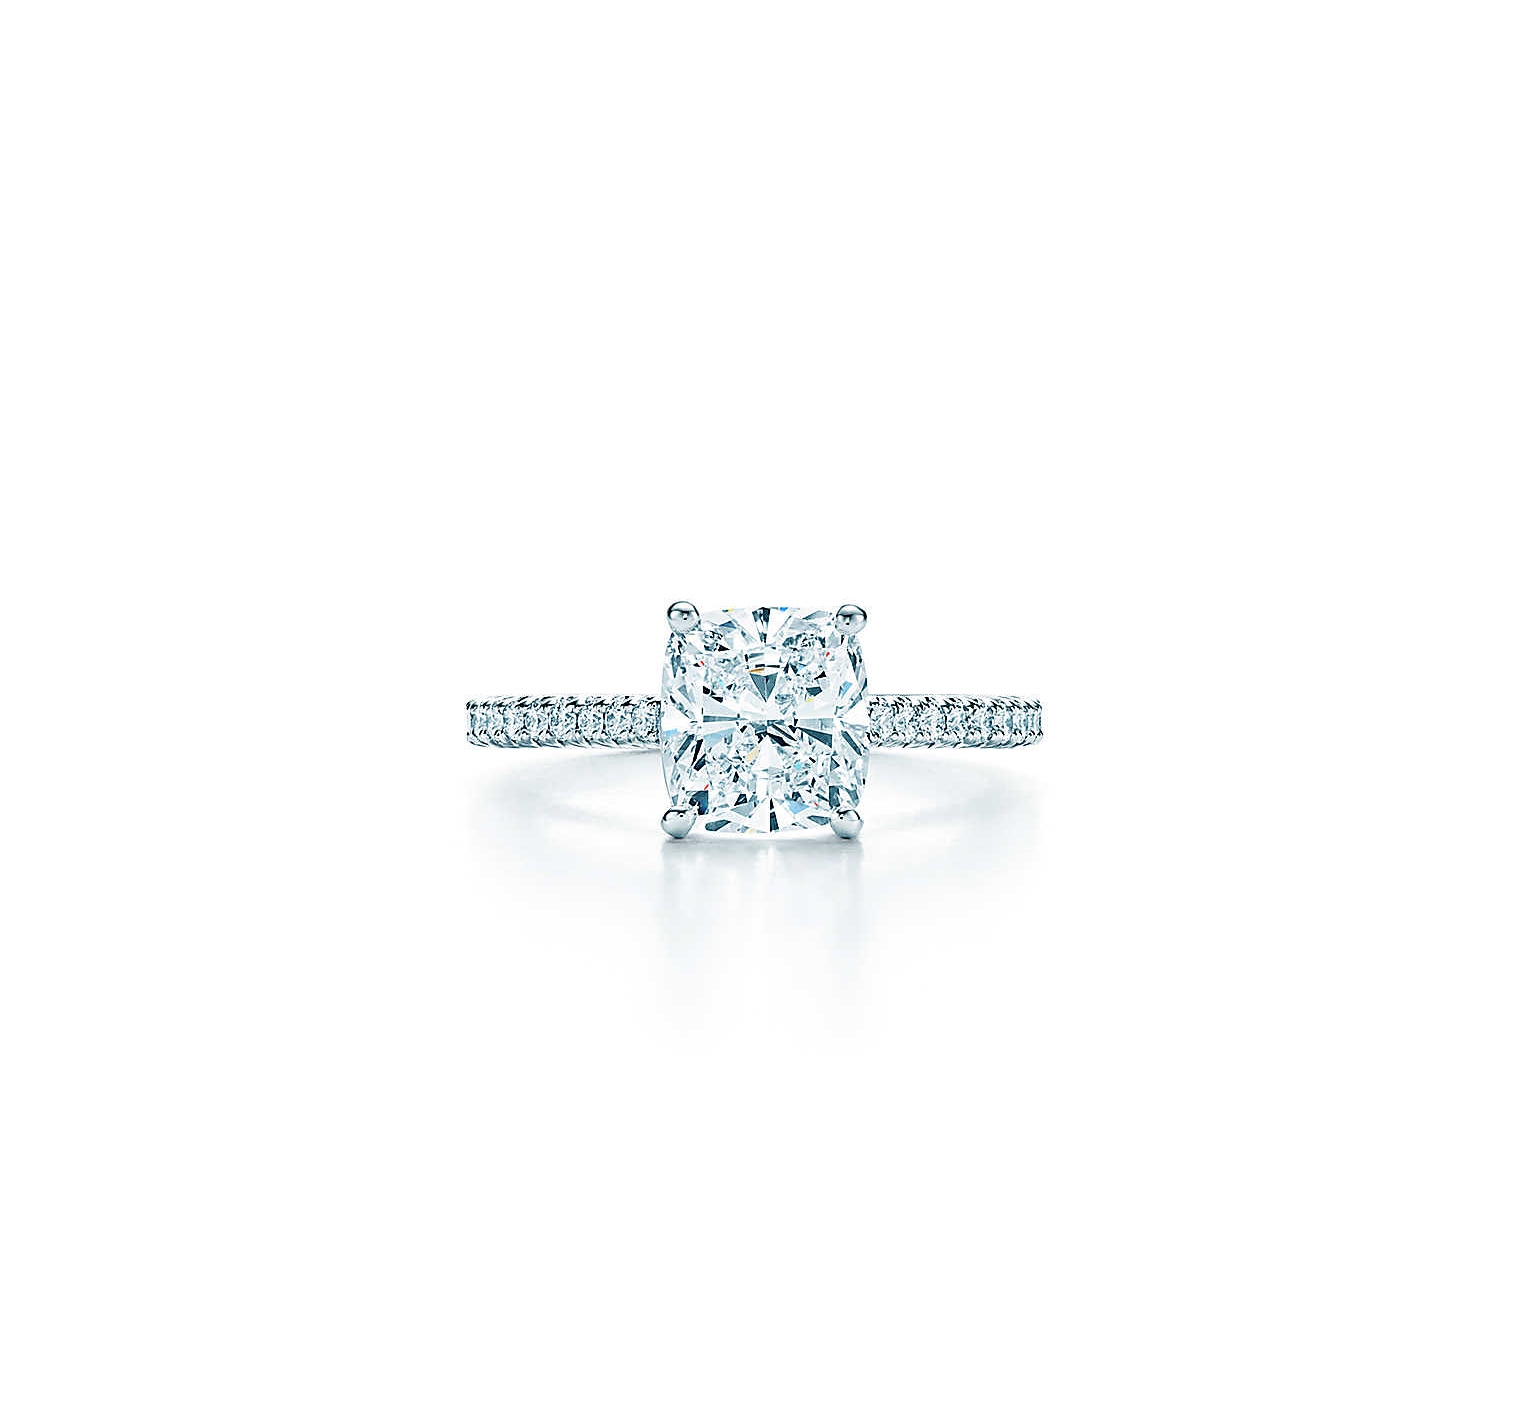 tiffany-novo-cushion-cut-diamond-pave-band-engagement-ring-0816.jpg